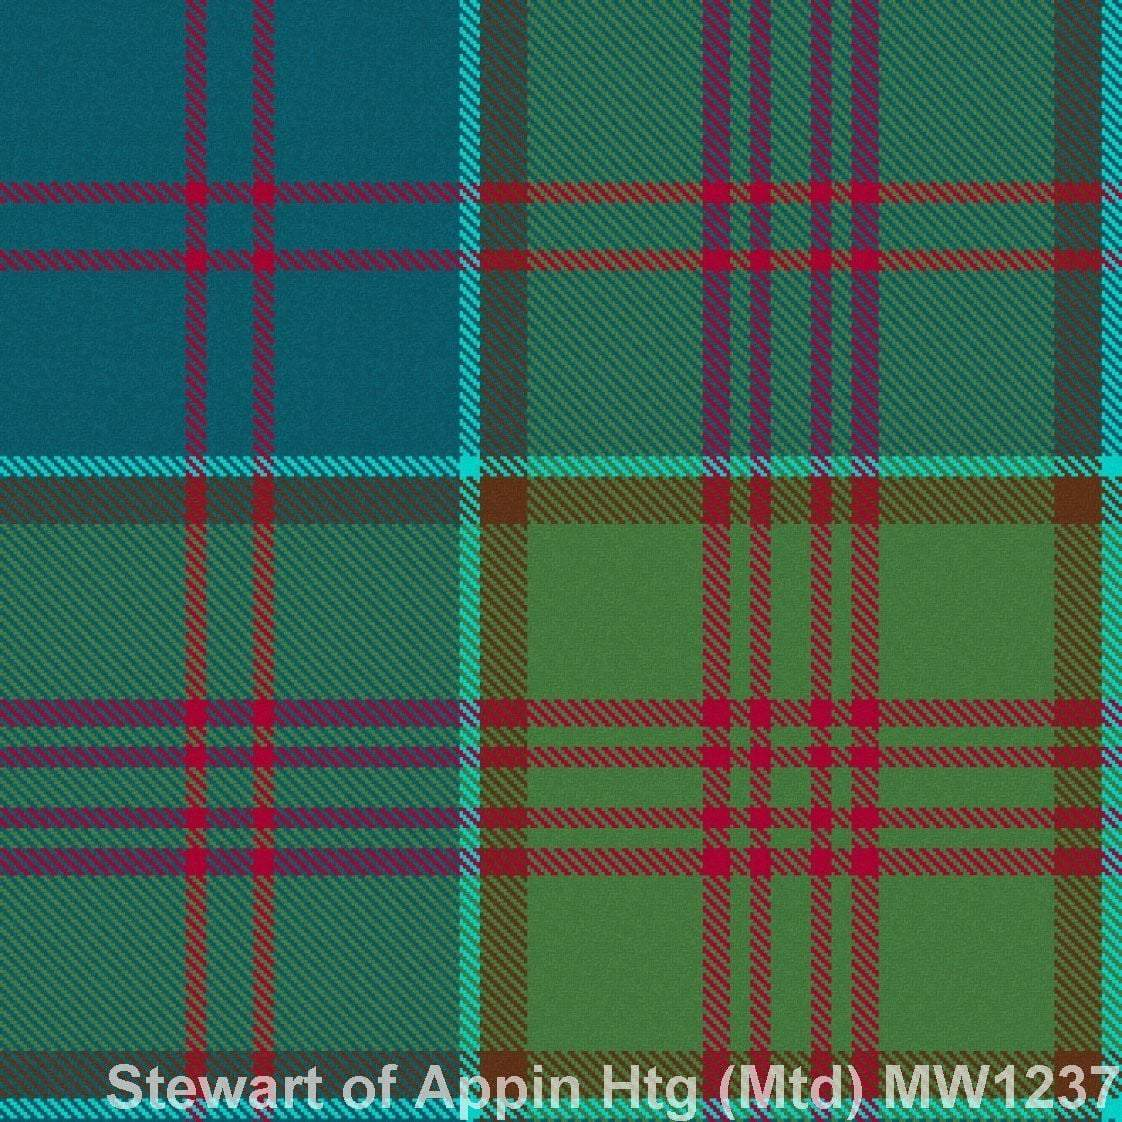 Stewart of Appin Hunting Muted